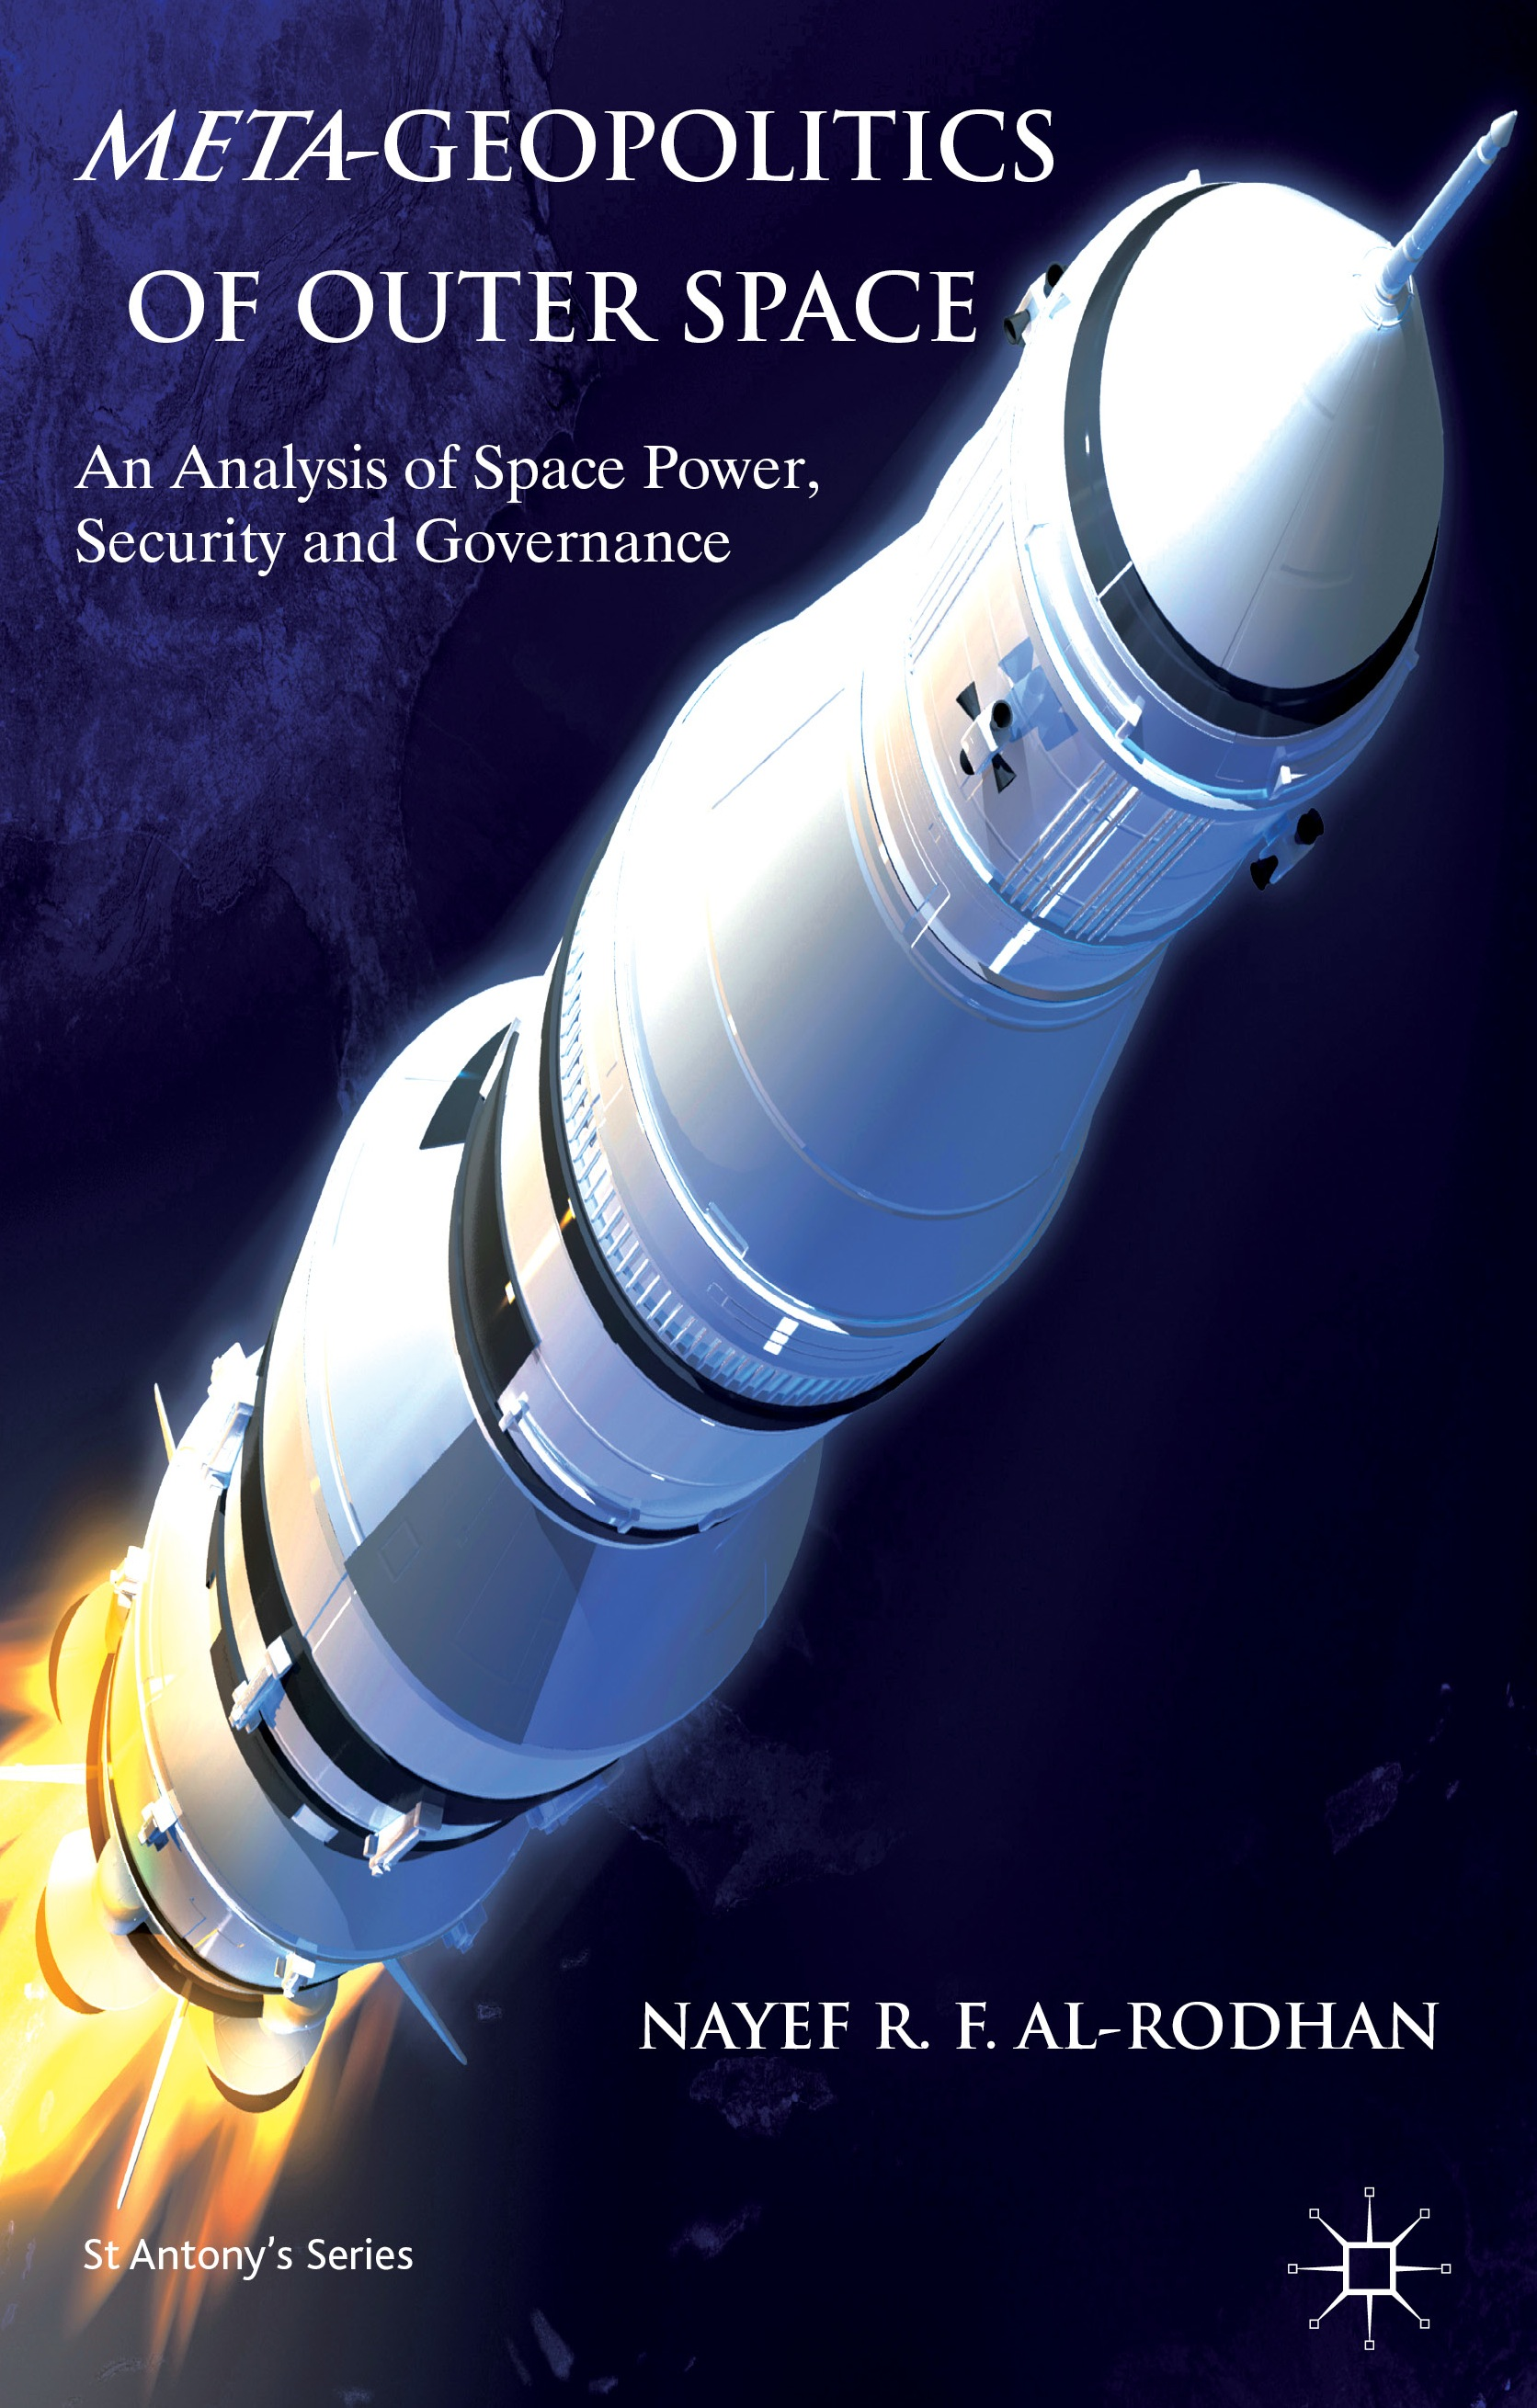 META-GEOPOLITICS OF OUTER SPACE:  An Analysis of Space Power, Security and Governance. (St Antony's Series)